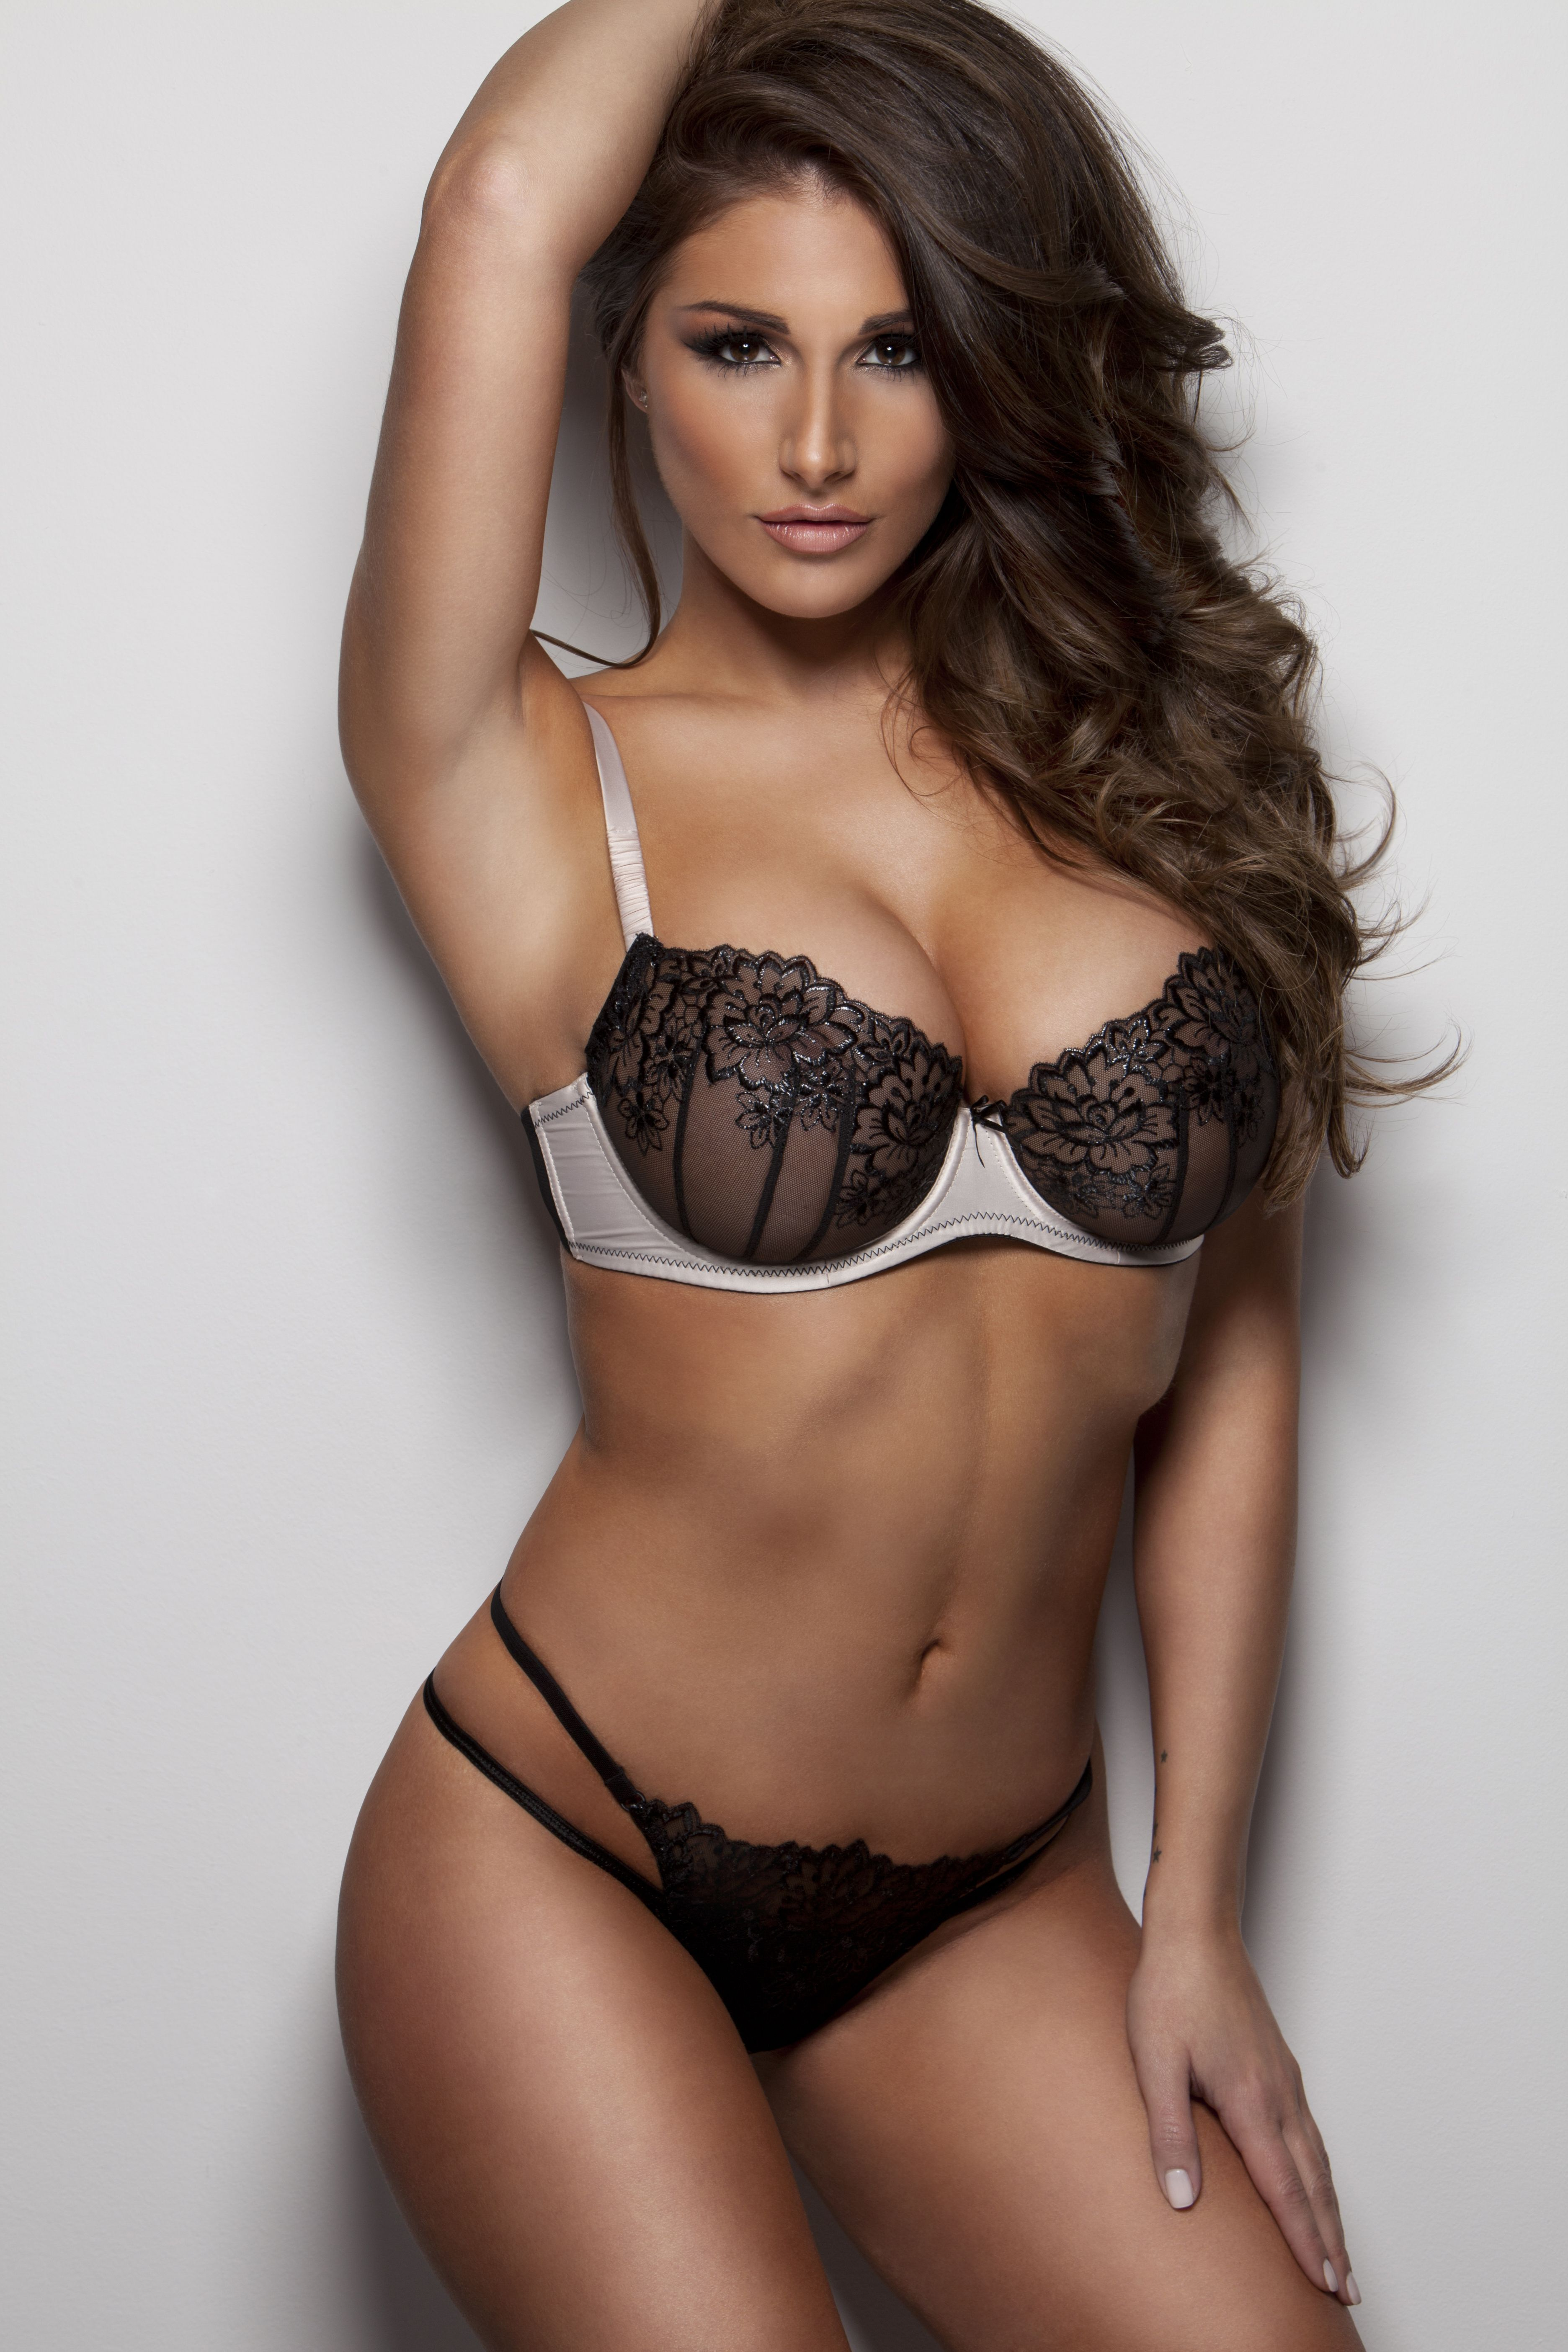 Soft Sensual Curves Of British Lingerie Bikini Model Lucy Pinder If You Love